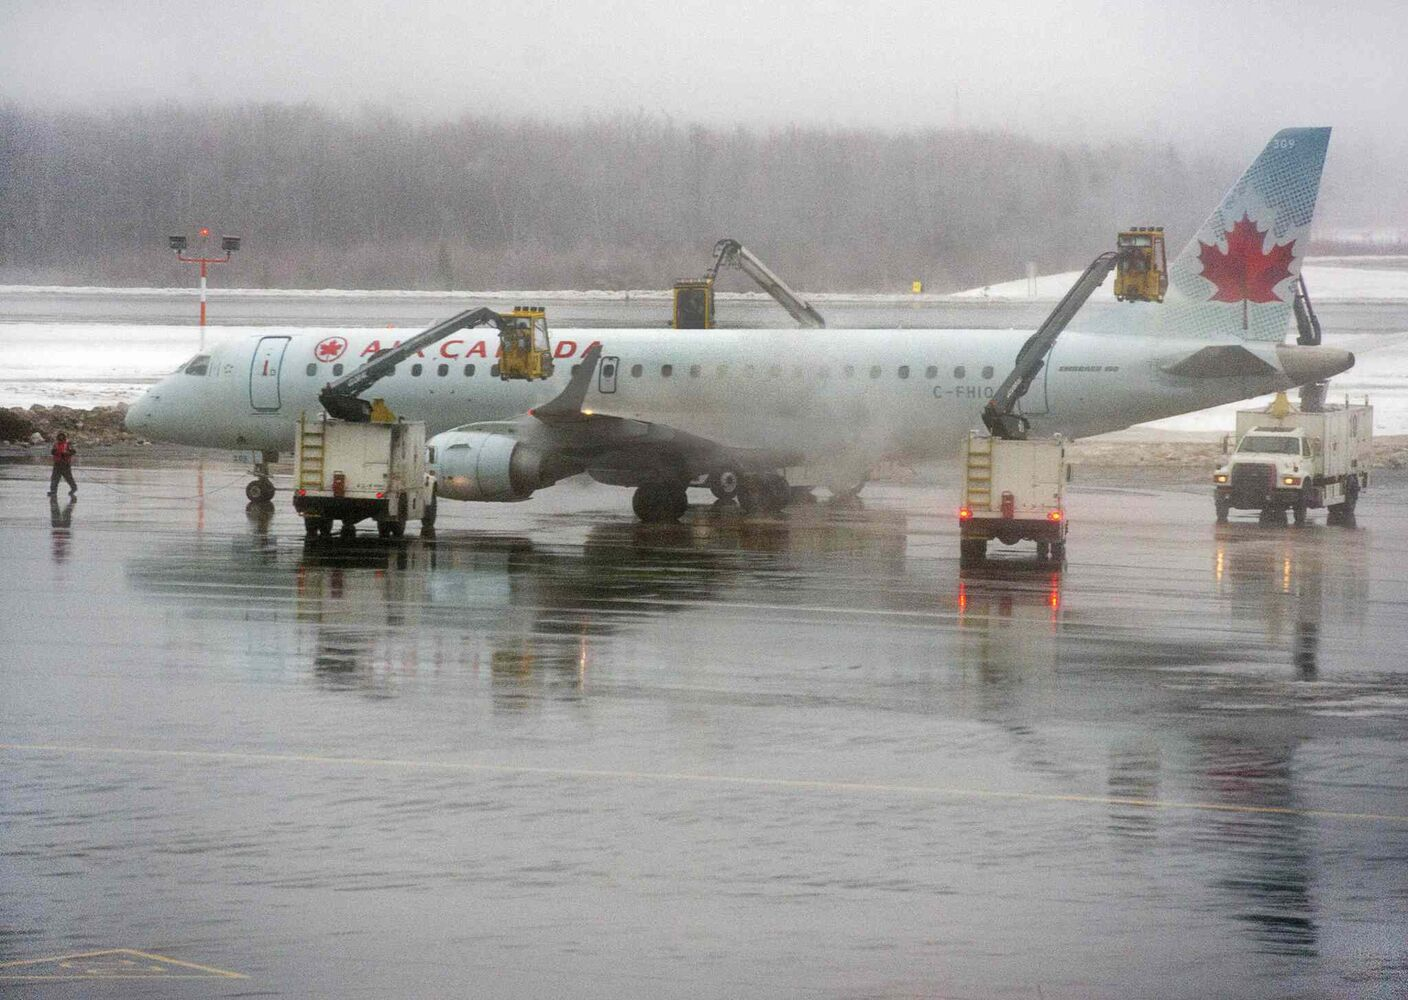 An Air Canada jet is de-iced at Halifax Stanfield International Airport in Halifax on Sunday. Much of Eastern Canada has been affected by the adverse weather, with rain, freezing rain and snow disrupting Christmas travel. (Andrew Vaughan / The Canadian Press)